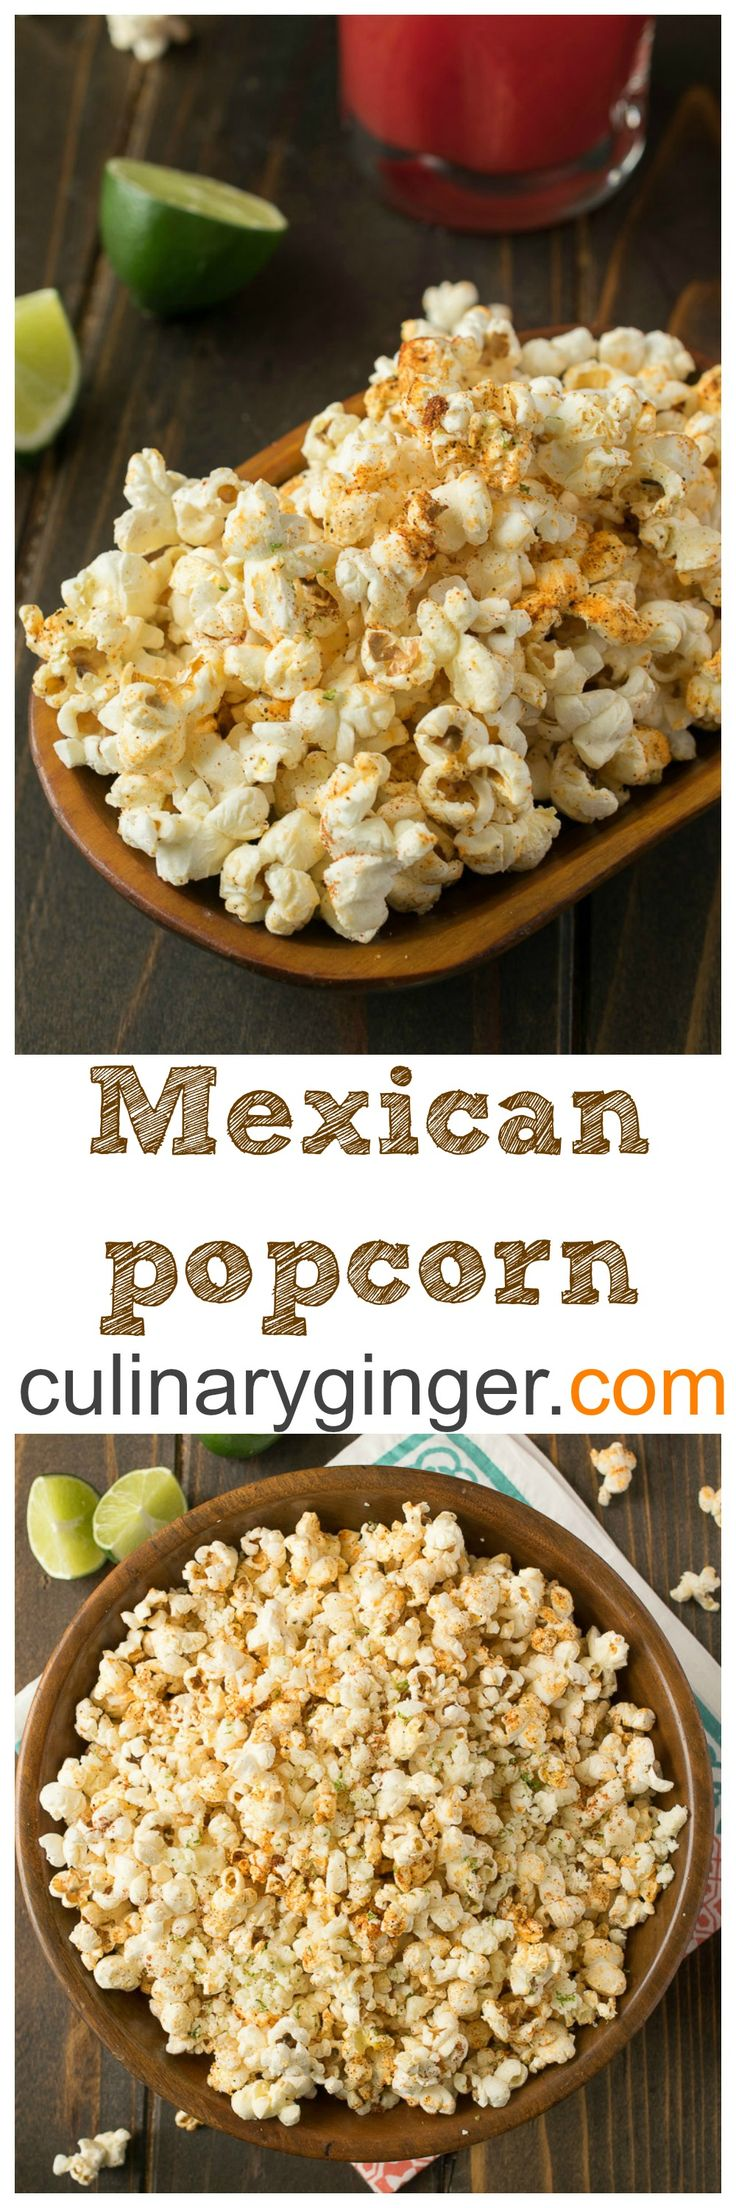 Mexican popcorn. Flavorful Mexican spices are sprinkled over warm, freshly popped popcorn and melted butter and a mixture of tangy, slightly salty cotija cheese and fresh lime zest is added for a lovely taste sensation. Perfect for celebrating Cinco de Mayo.